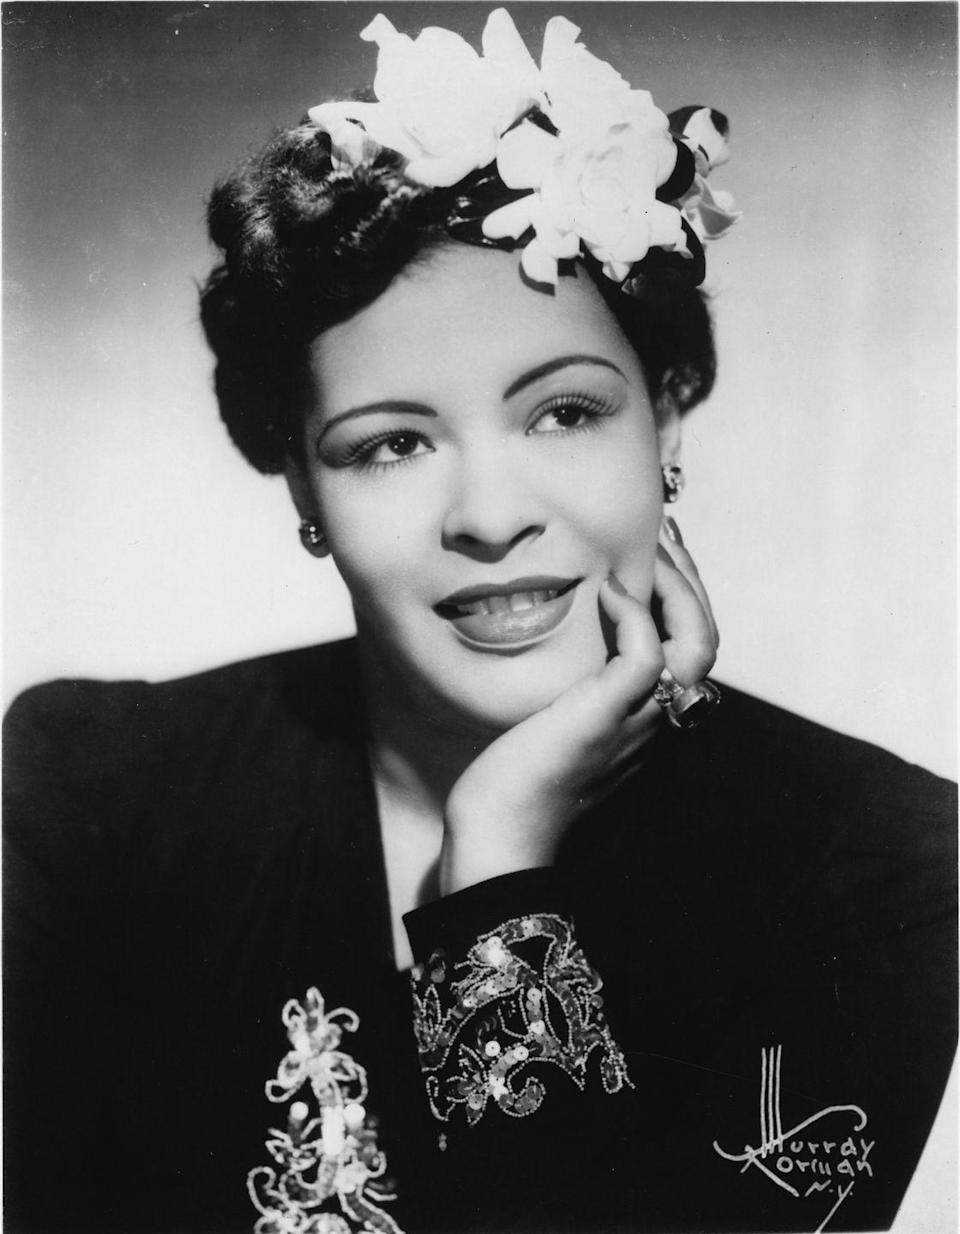 <p>Though she was known primarily for her iconic voice, Billie Holiday's stardom also popularized elegantly accenting hairstyles with flowers — specifically white gardenias.</p>